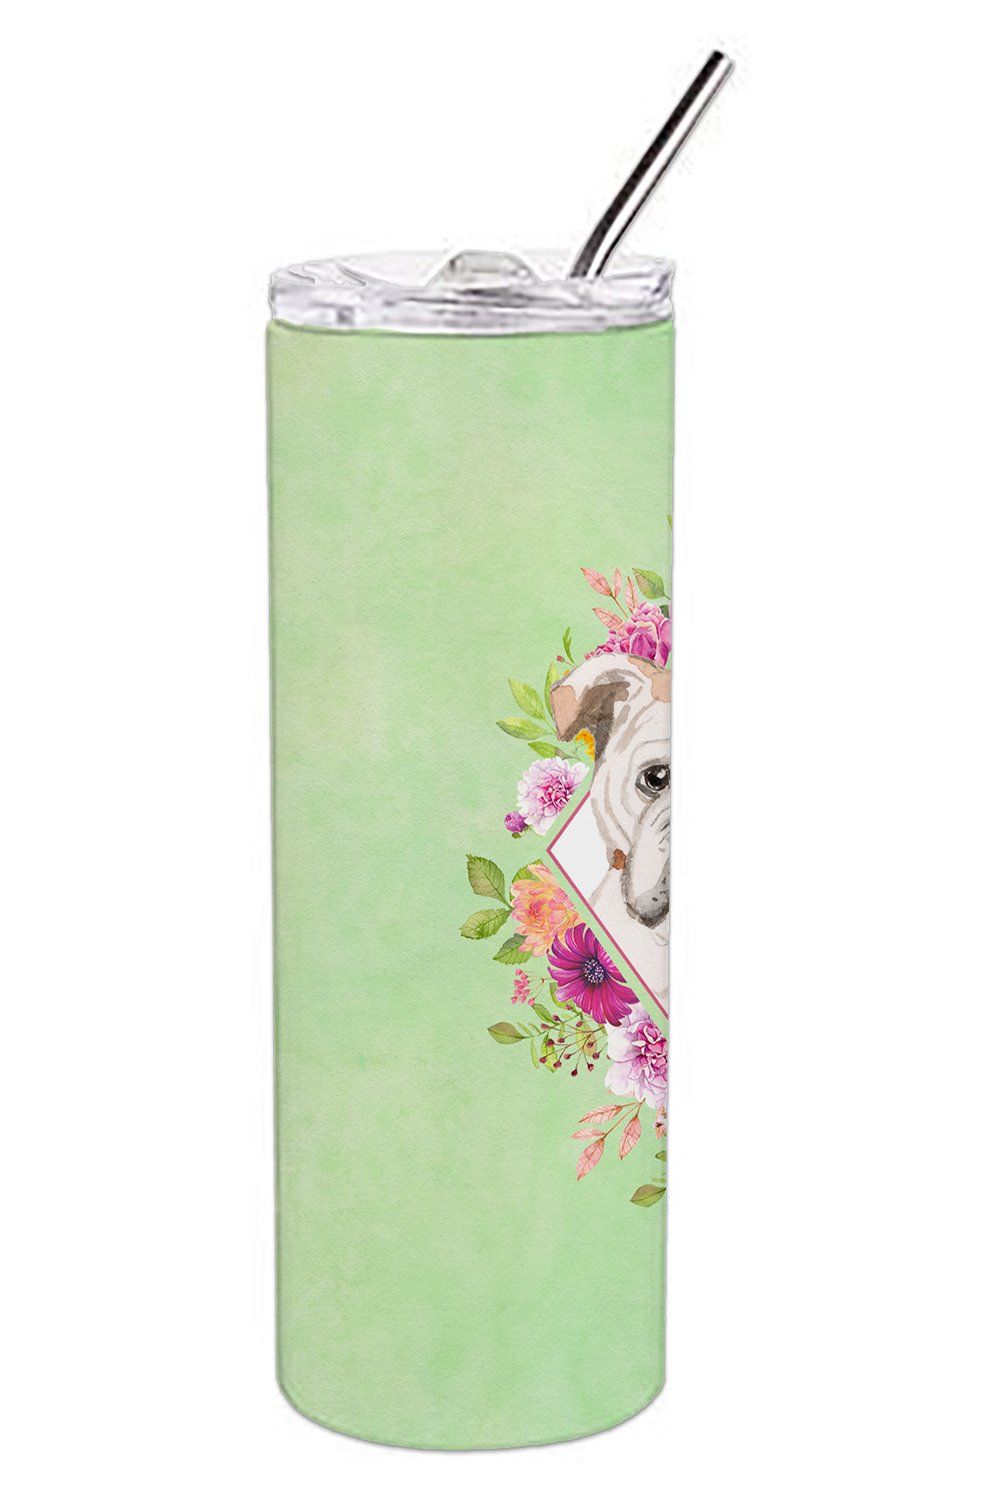 English Bulldog Green Flowers Double Walled Stainless Steel 20 oz Skinny Tumbler CK4400TBL20 by Caroline's Treasures